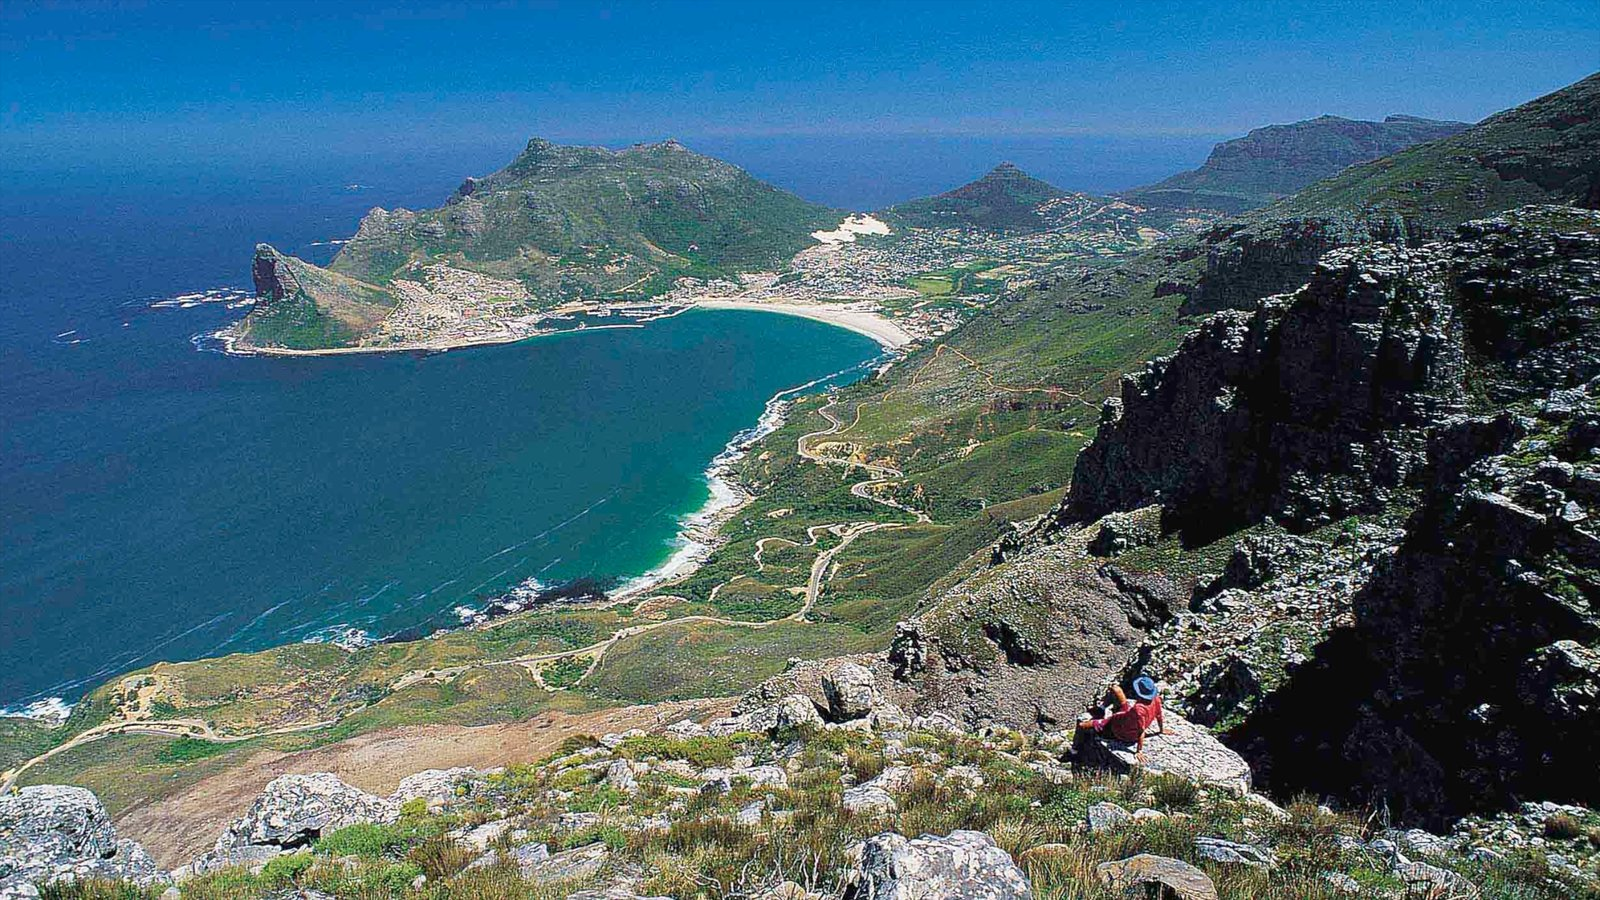 Hout Bay Beach showing landscape views, general coastal views and mountains